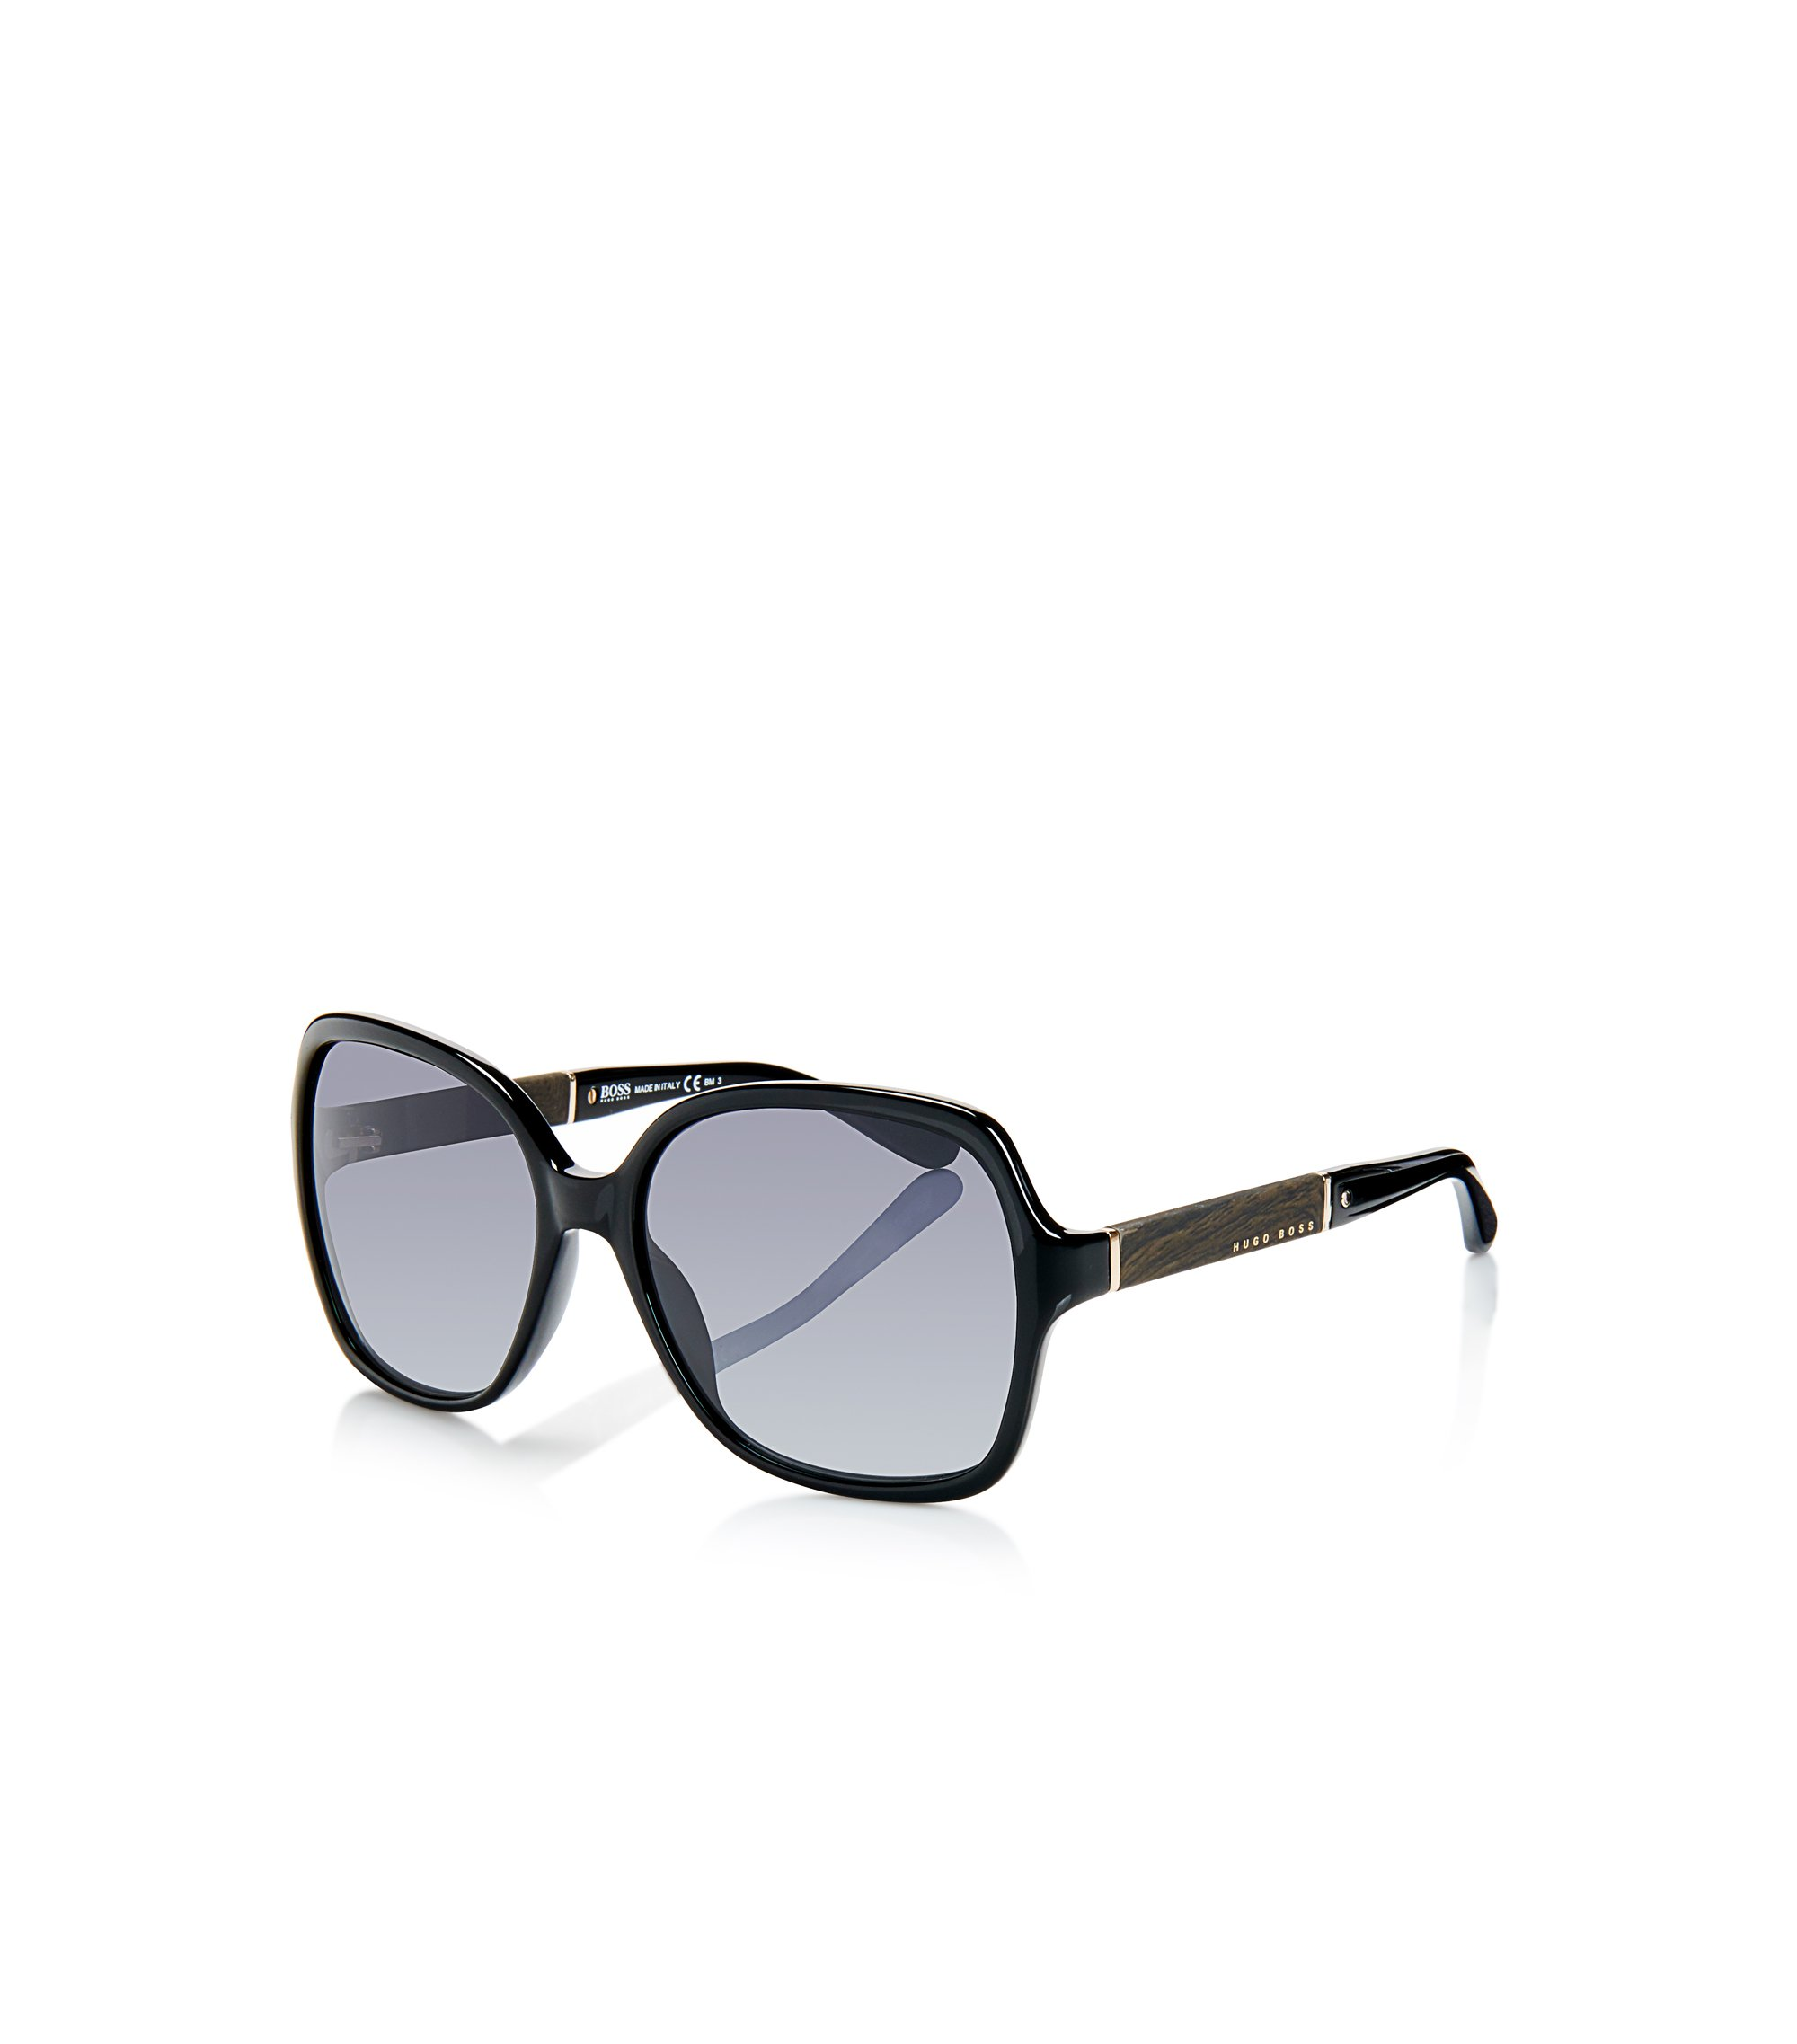 Oversized Wood Detail Sunglasses | BOSS 0664, Assorted-Pre-Pack